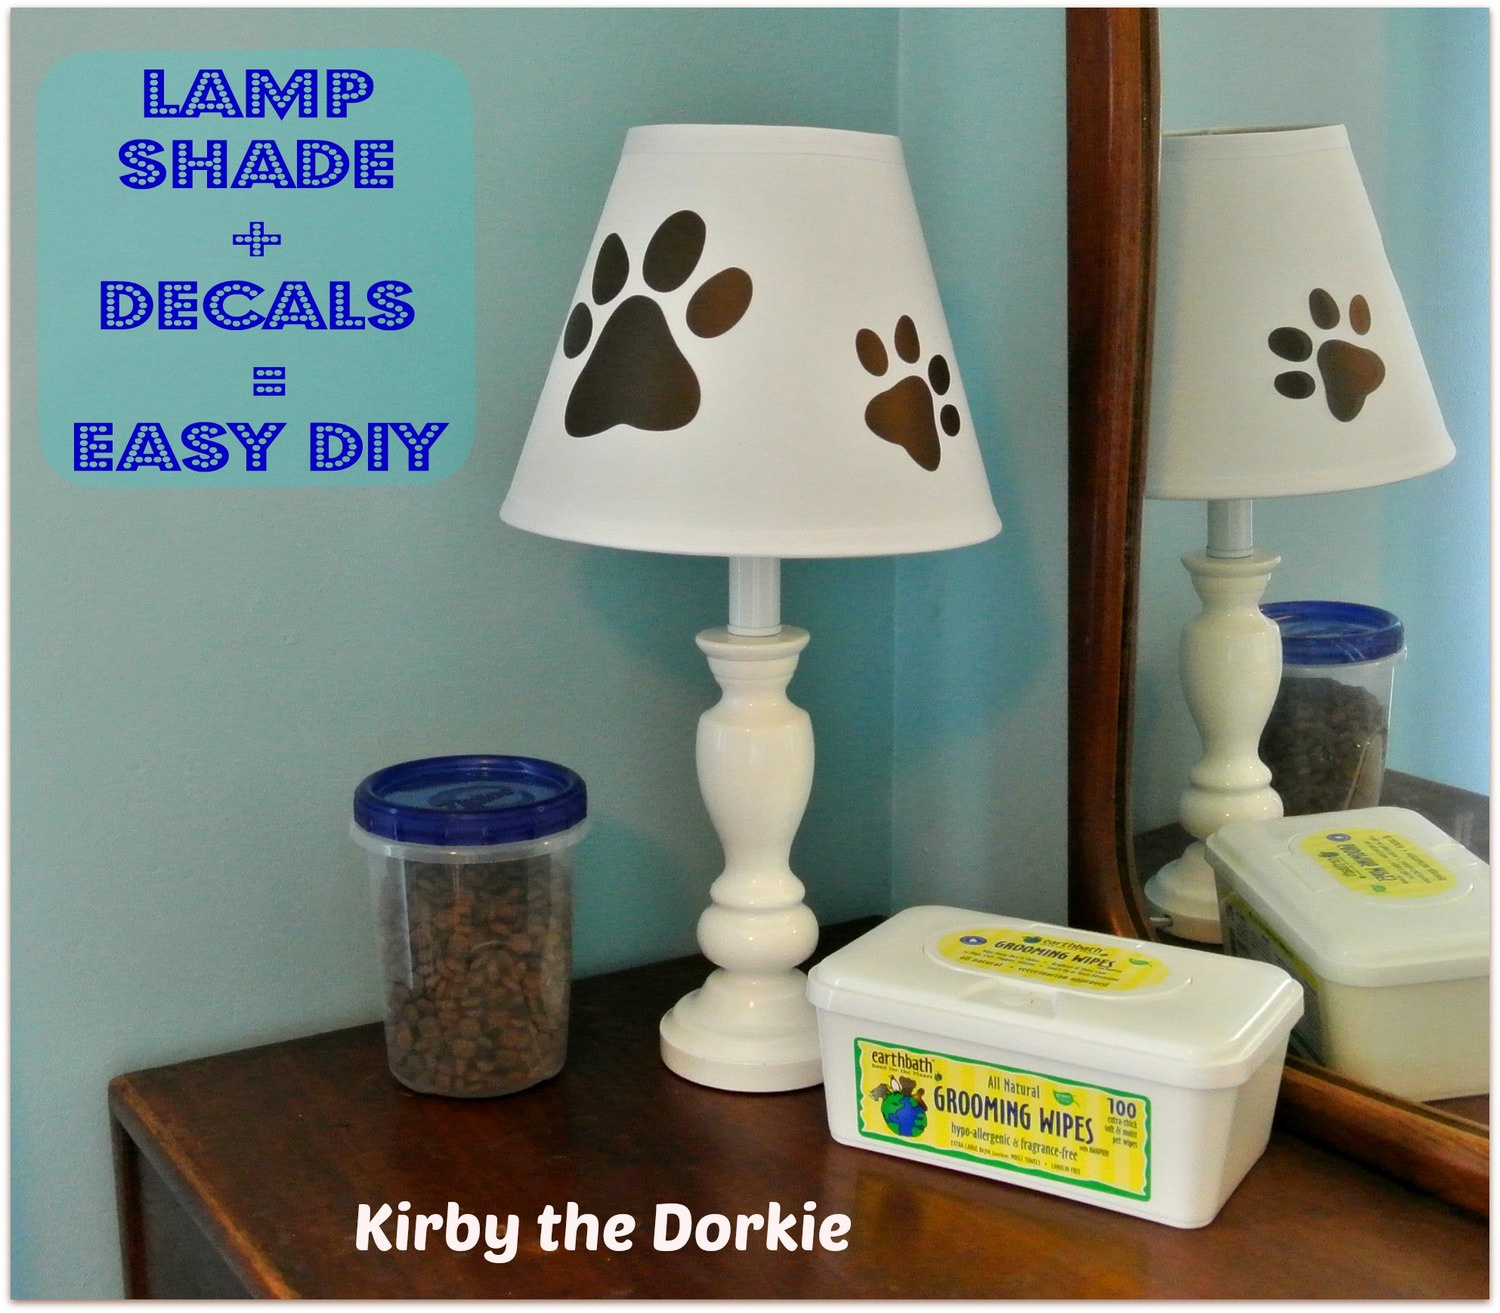 Lamp Shade Decals Easy Diy The Canine Chef Cookbook